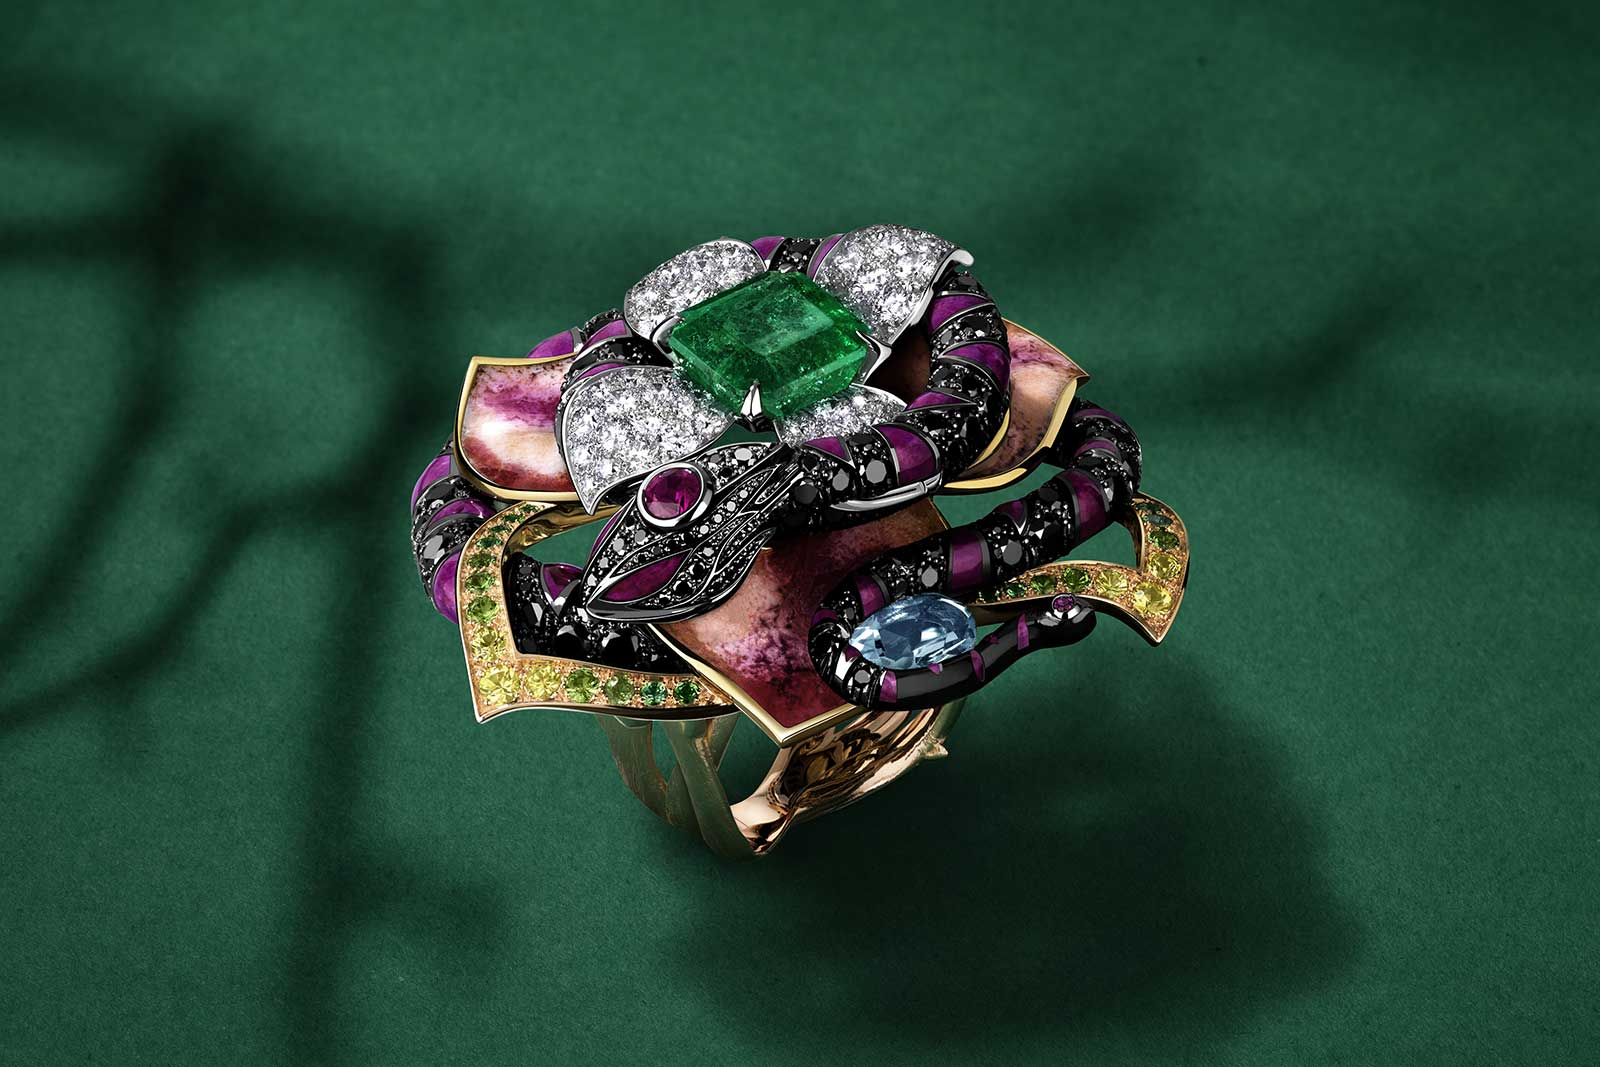 Jewellery Orchestra 'Boa Constrictor' dis-engagement ring with 4 ct Colombian emerald, aquamarine, tsavorites, rubies, colourless and black diamonds and enamel in platinum, 18k yellow, pink and white gold